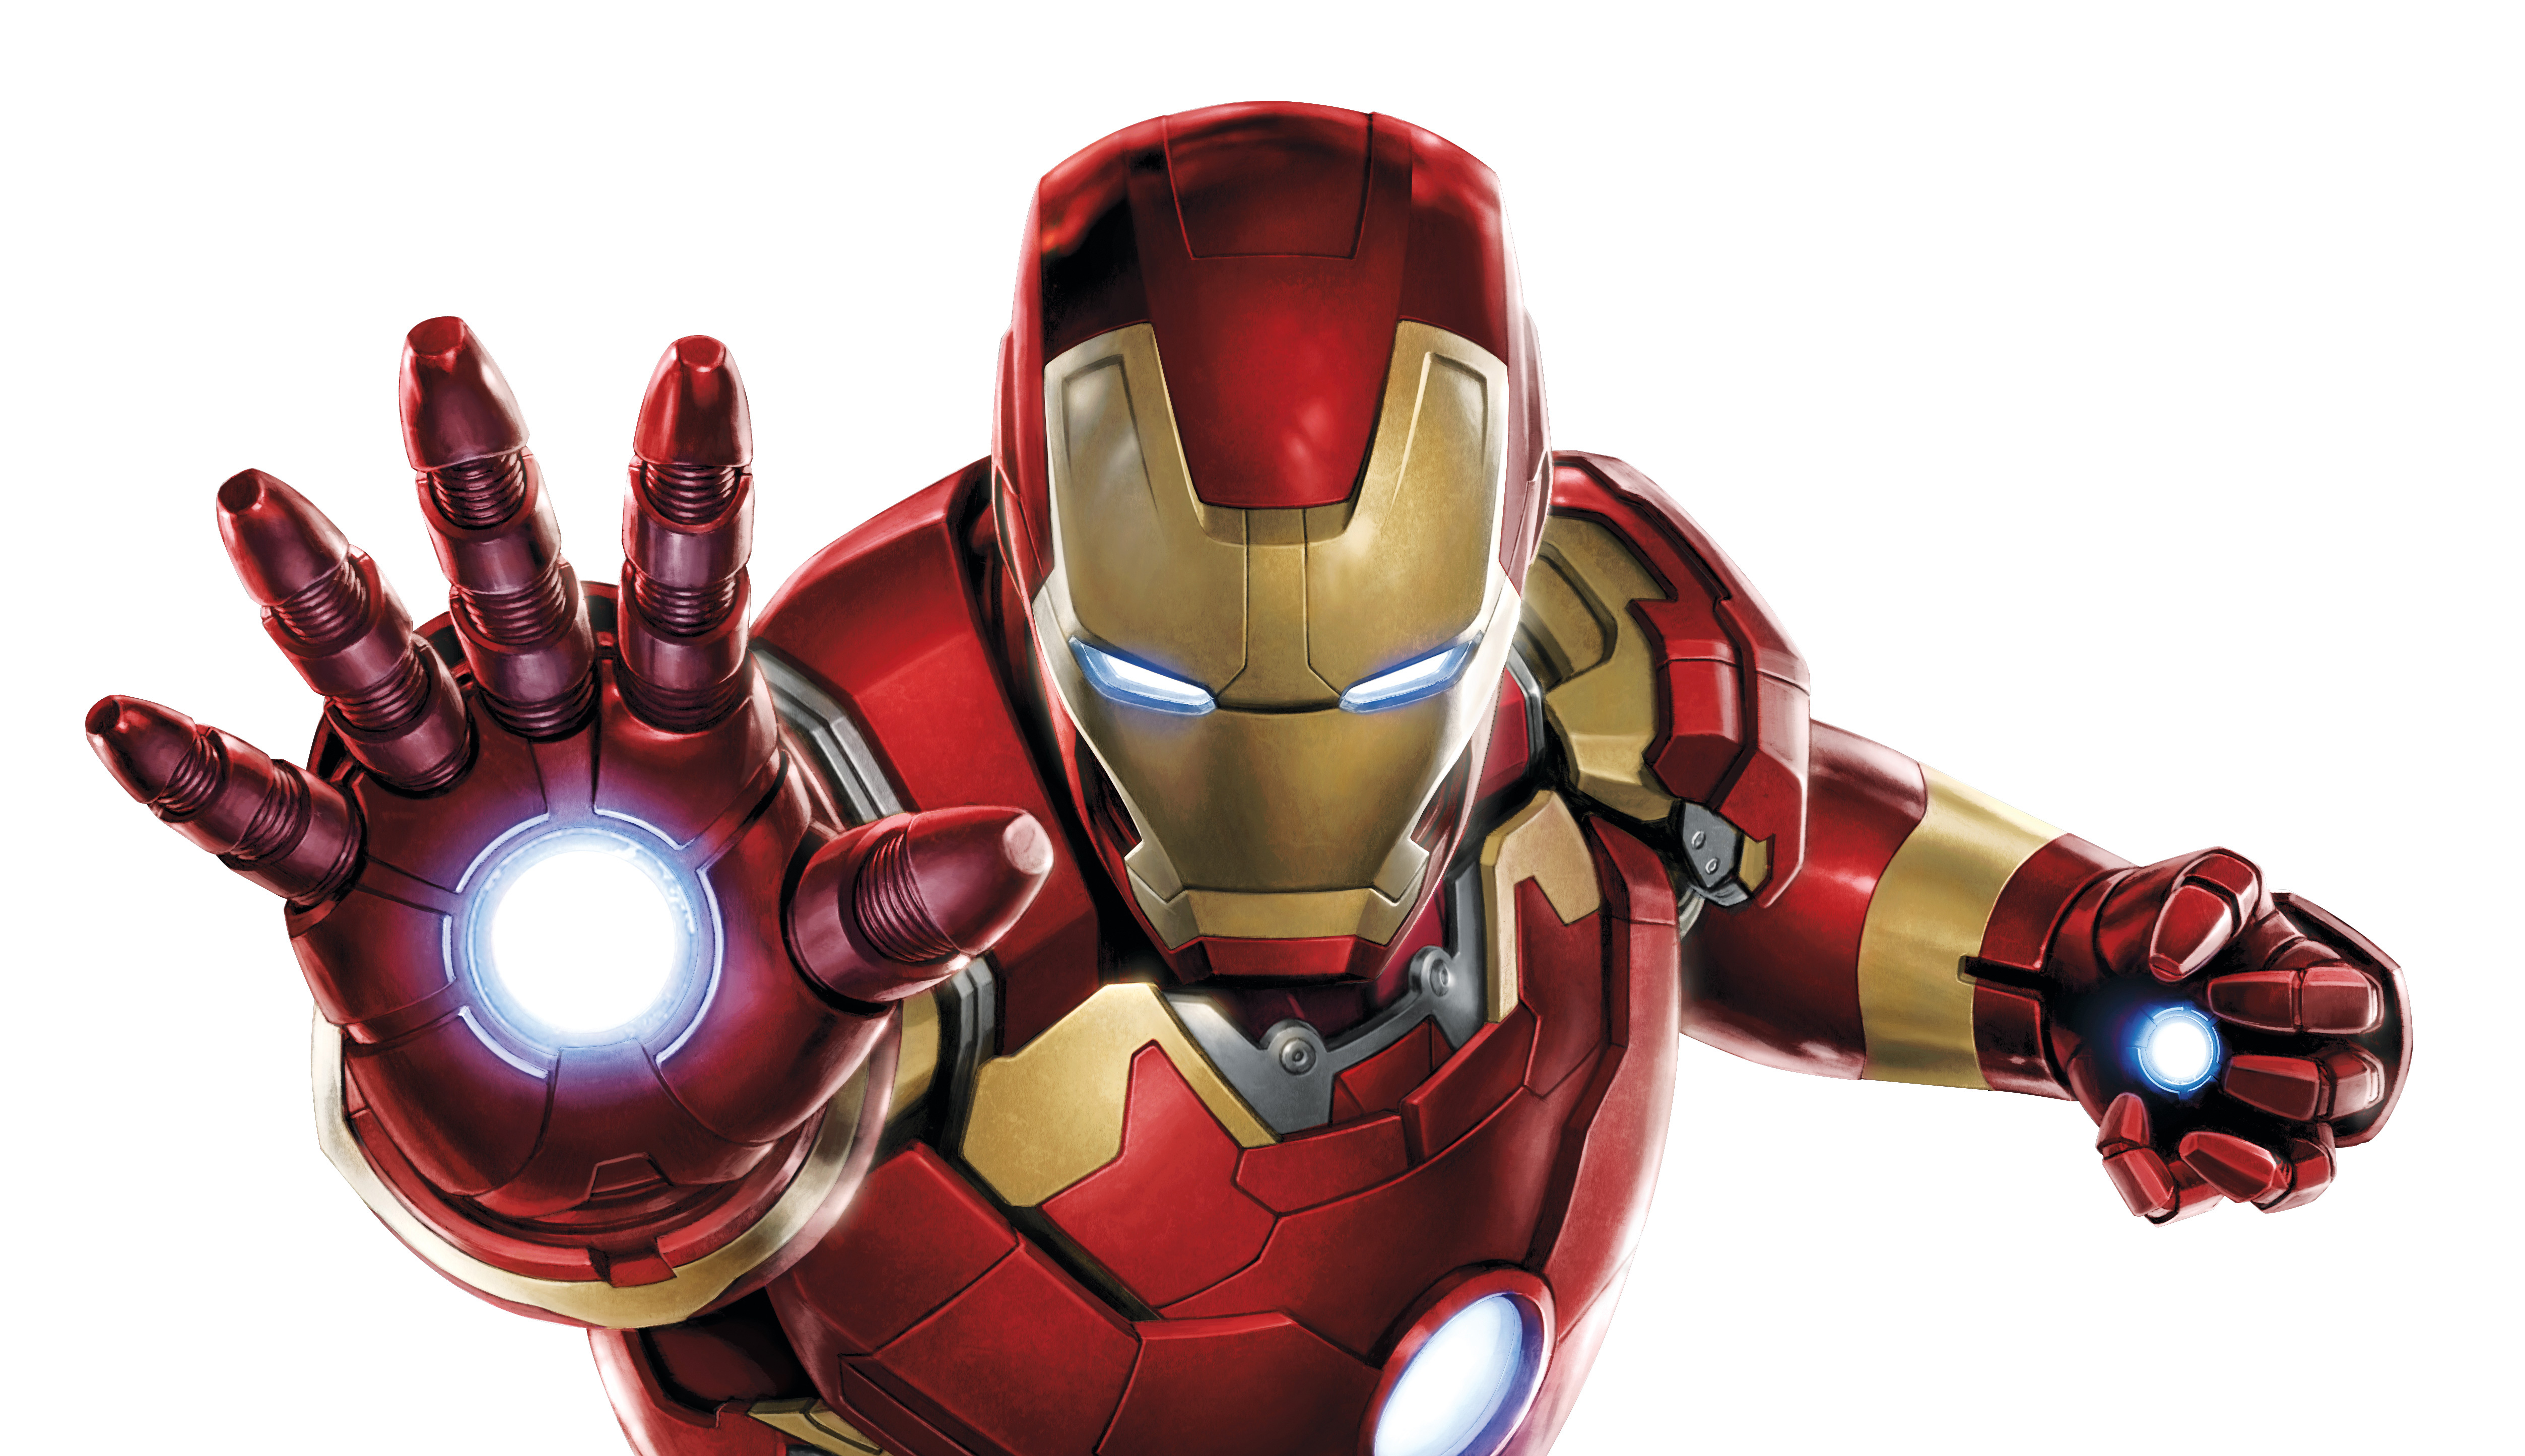 Iron man 5k hd movies 4k wallpapers images backgrounds photos and pictures - Iron man wallpaper 4k ...